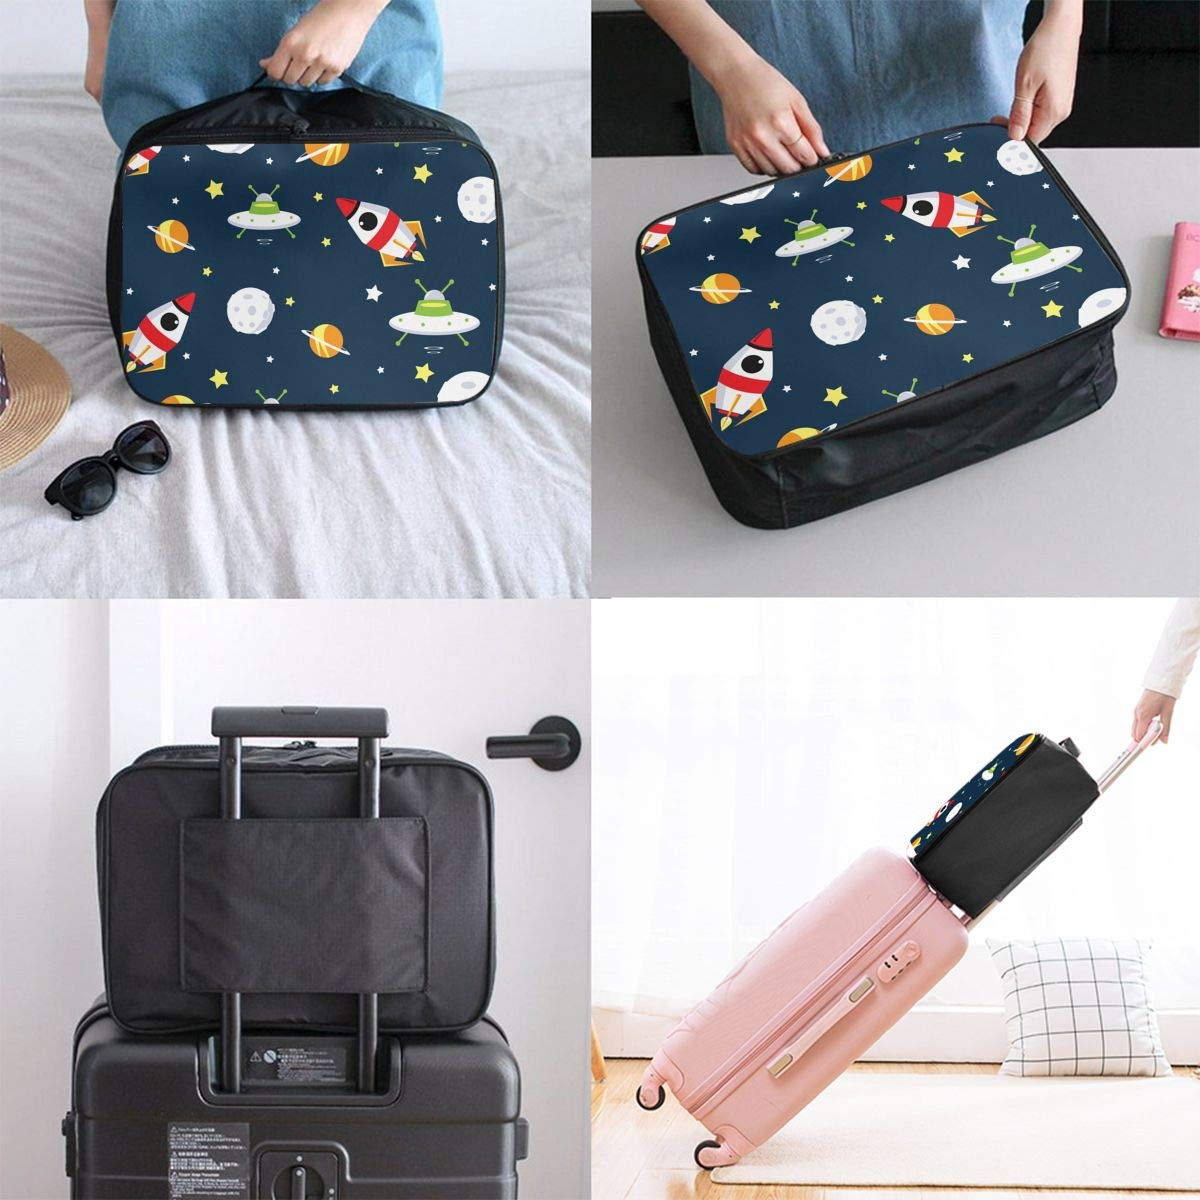 Travel Luggage Duffle Bag Lightweight Portable Handbag Space Pattern Large Capacity Waterproof Foldable Storage Tote